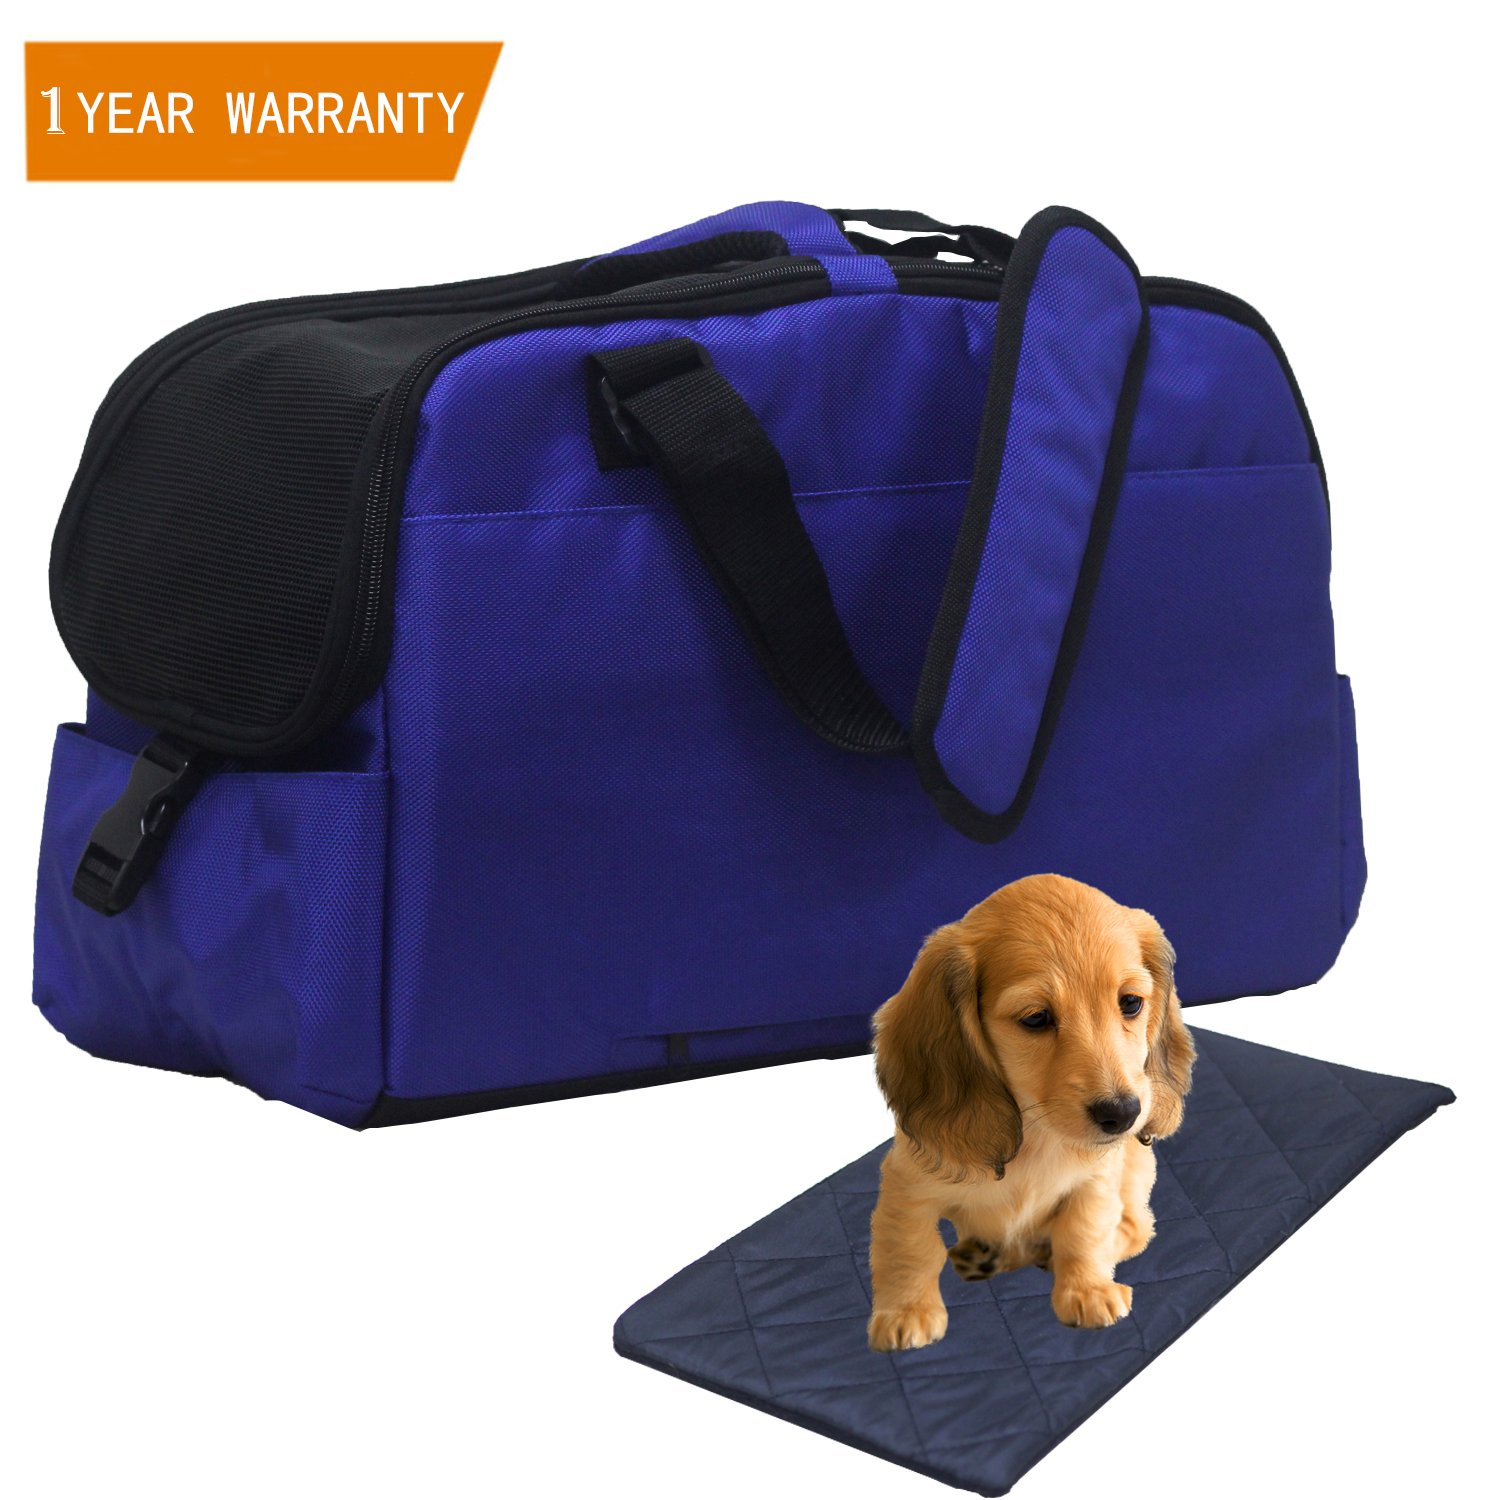 Pet Carrier, Airline Approved Soft Sided Travel Bag for Small Dogs and Cat Under Seat Portable & Foldable Animal Tote With Airy Windows Locking Zippersand Spacious Soft Pad for Puppies, Kitten Blue